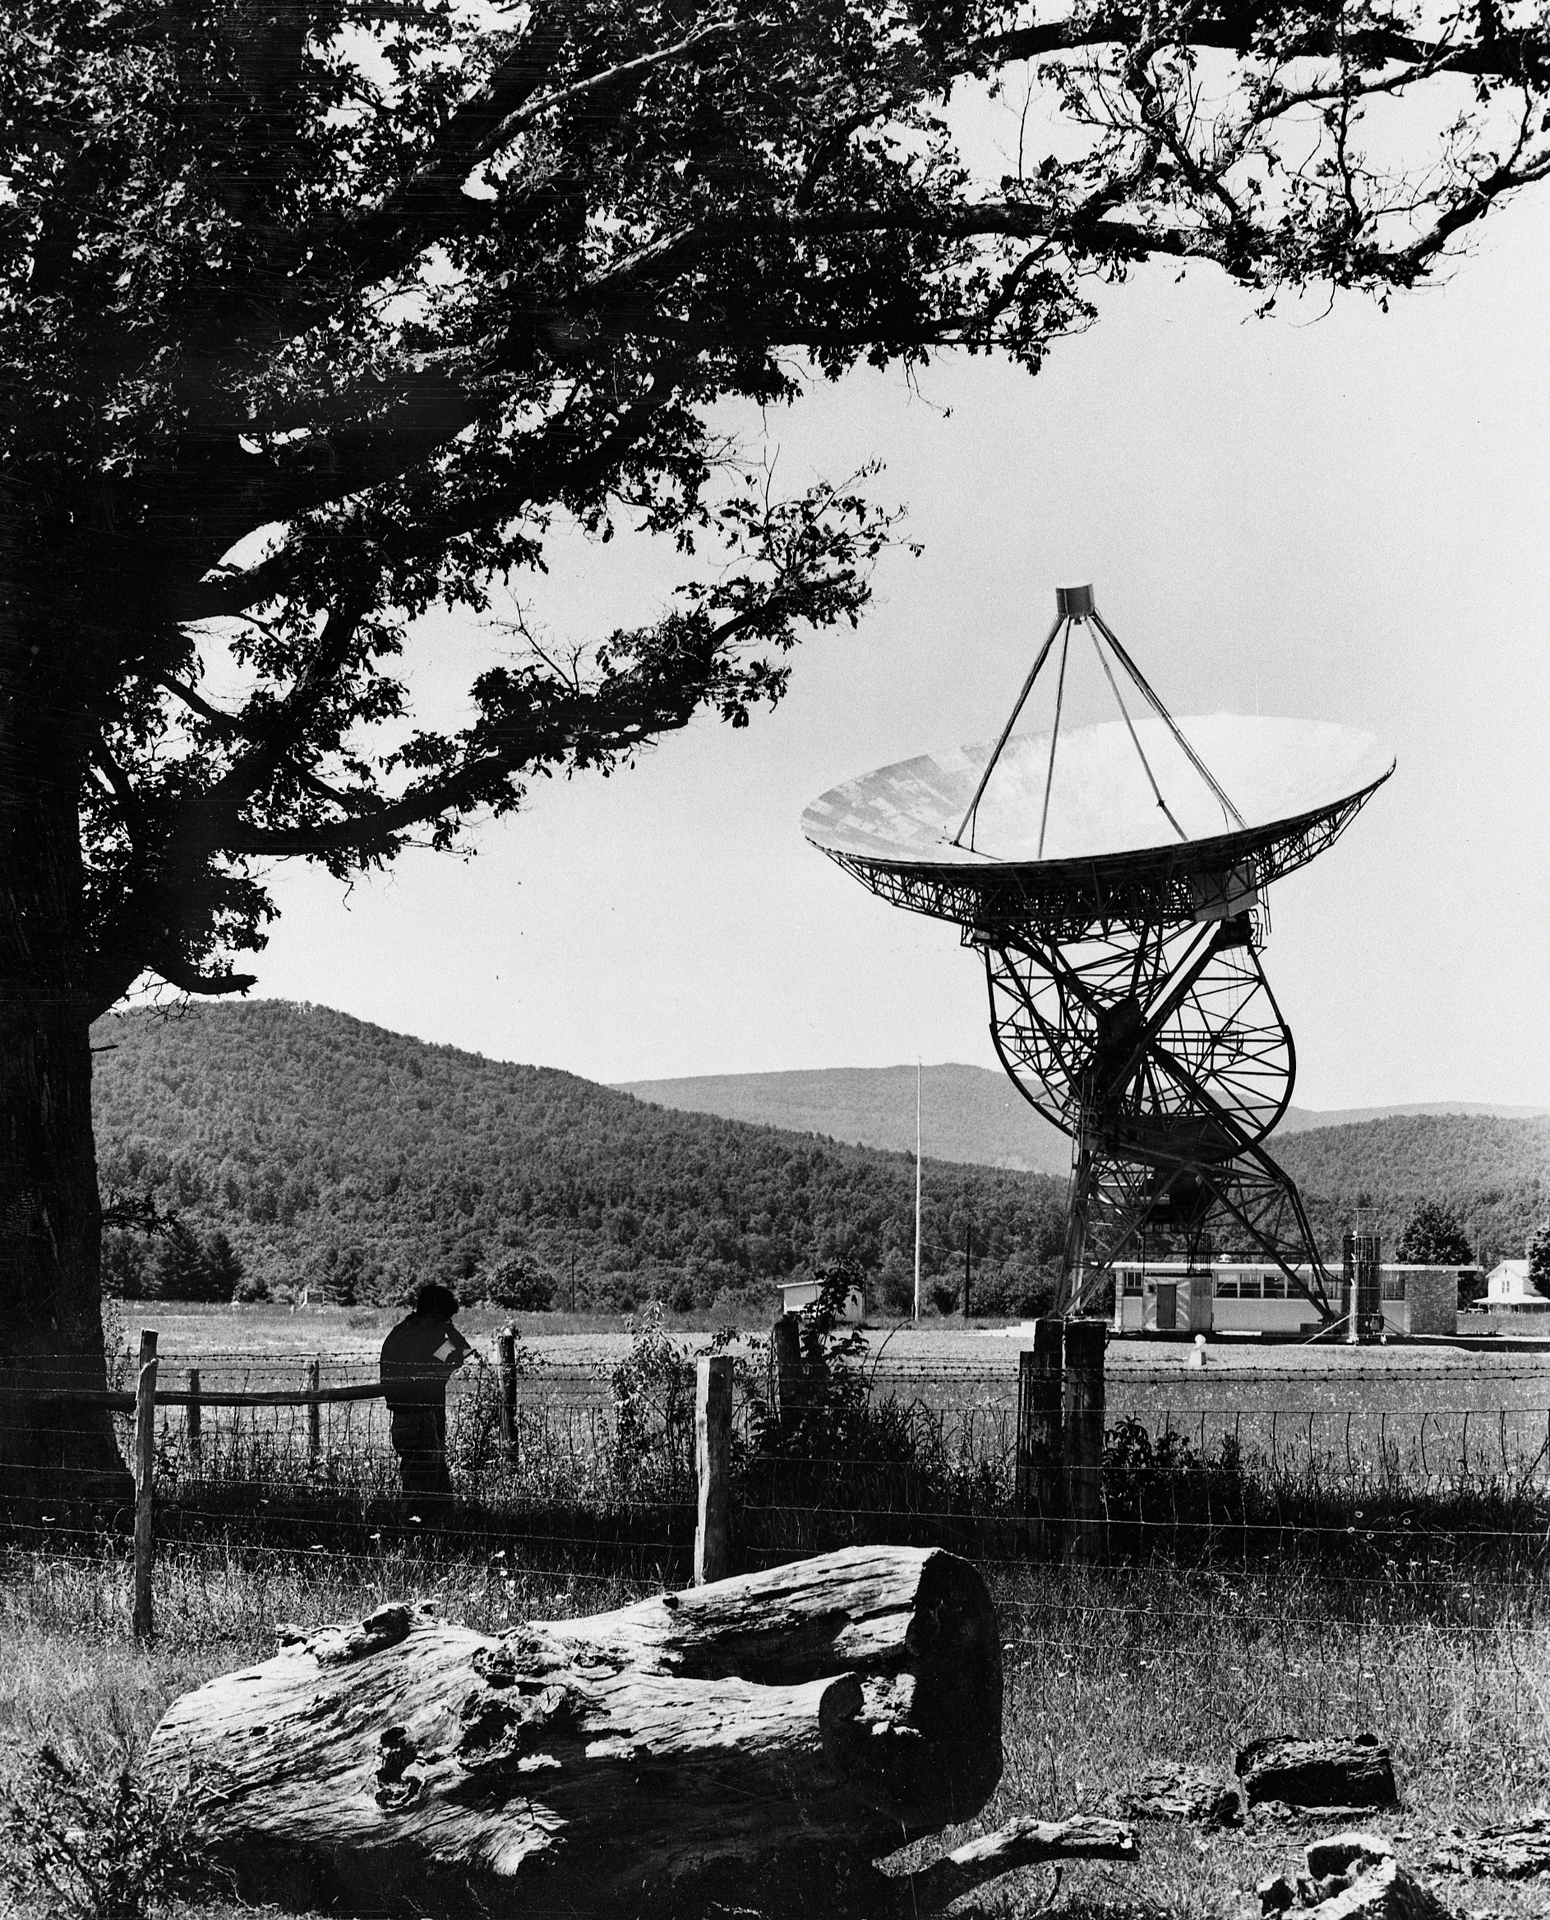 85-foot Tatel Telescope